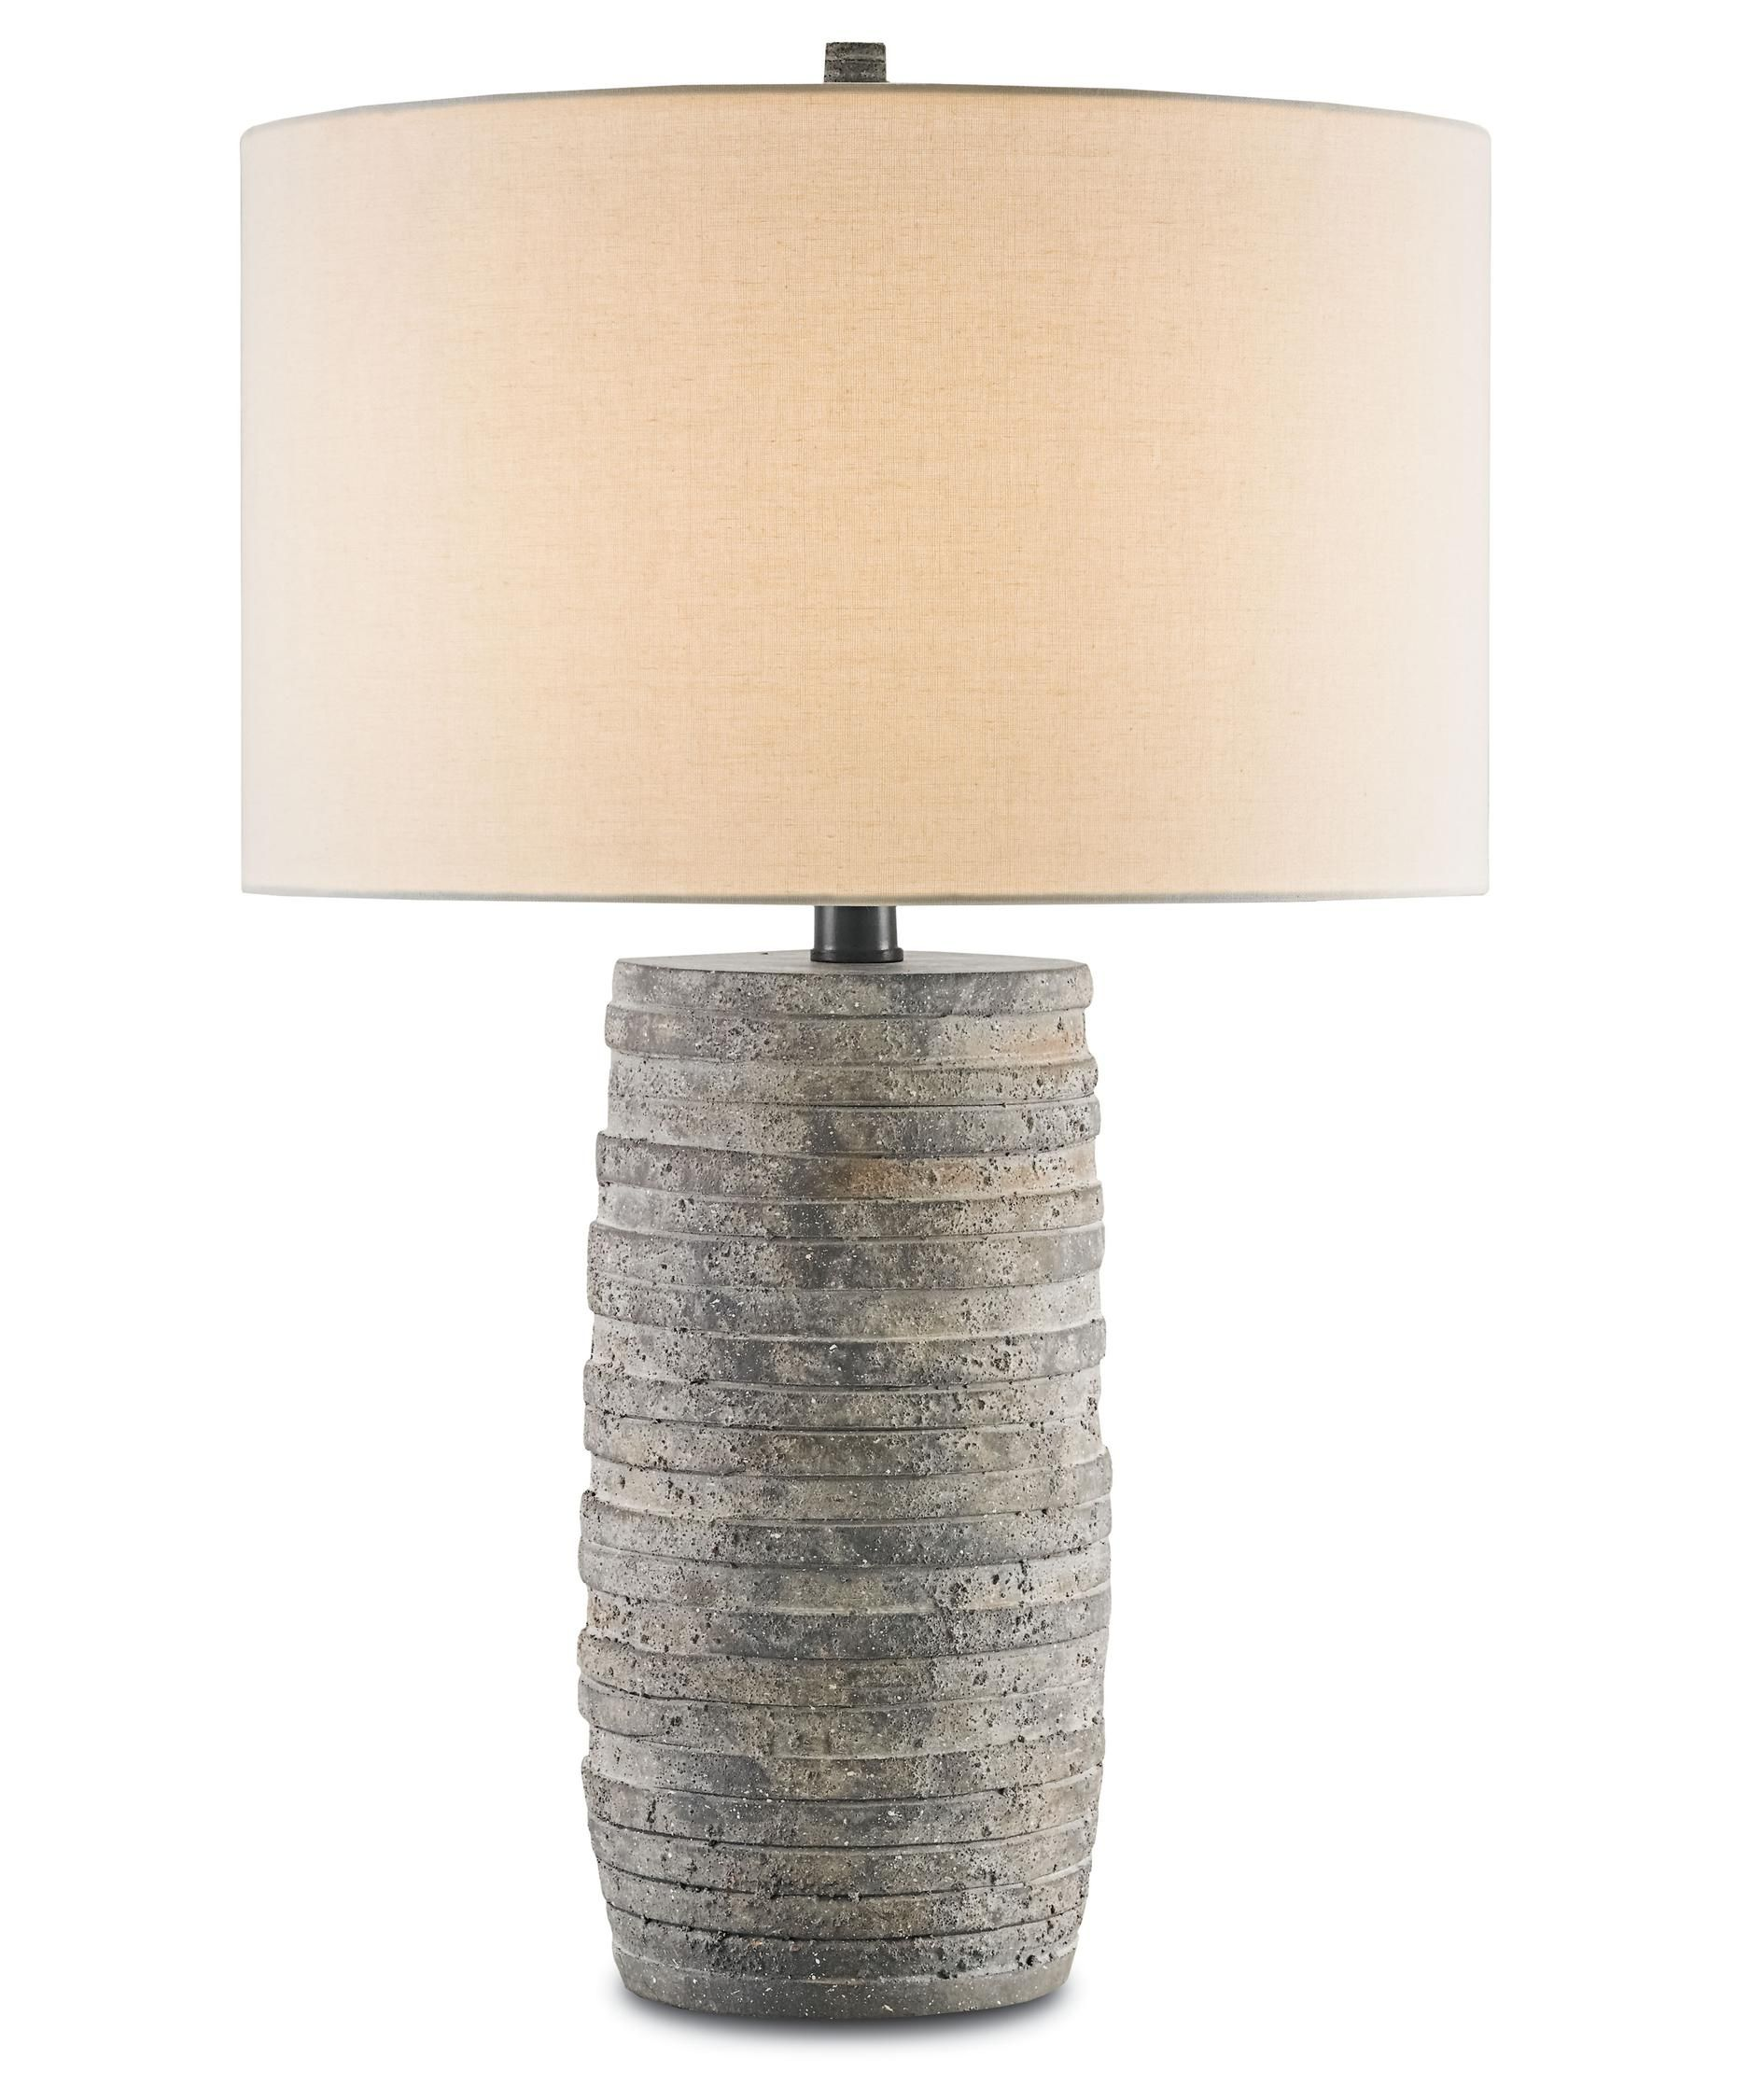 Wonderful Currey And Company 6782 Innkeeper 30 Inch High Table Lamp | Capitol Lighting  1 800lighting Ideas